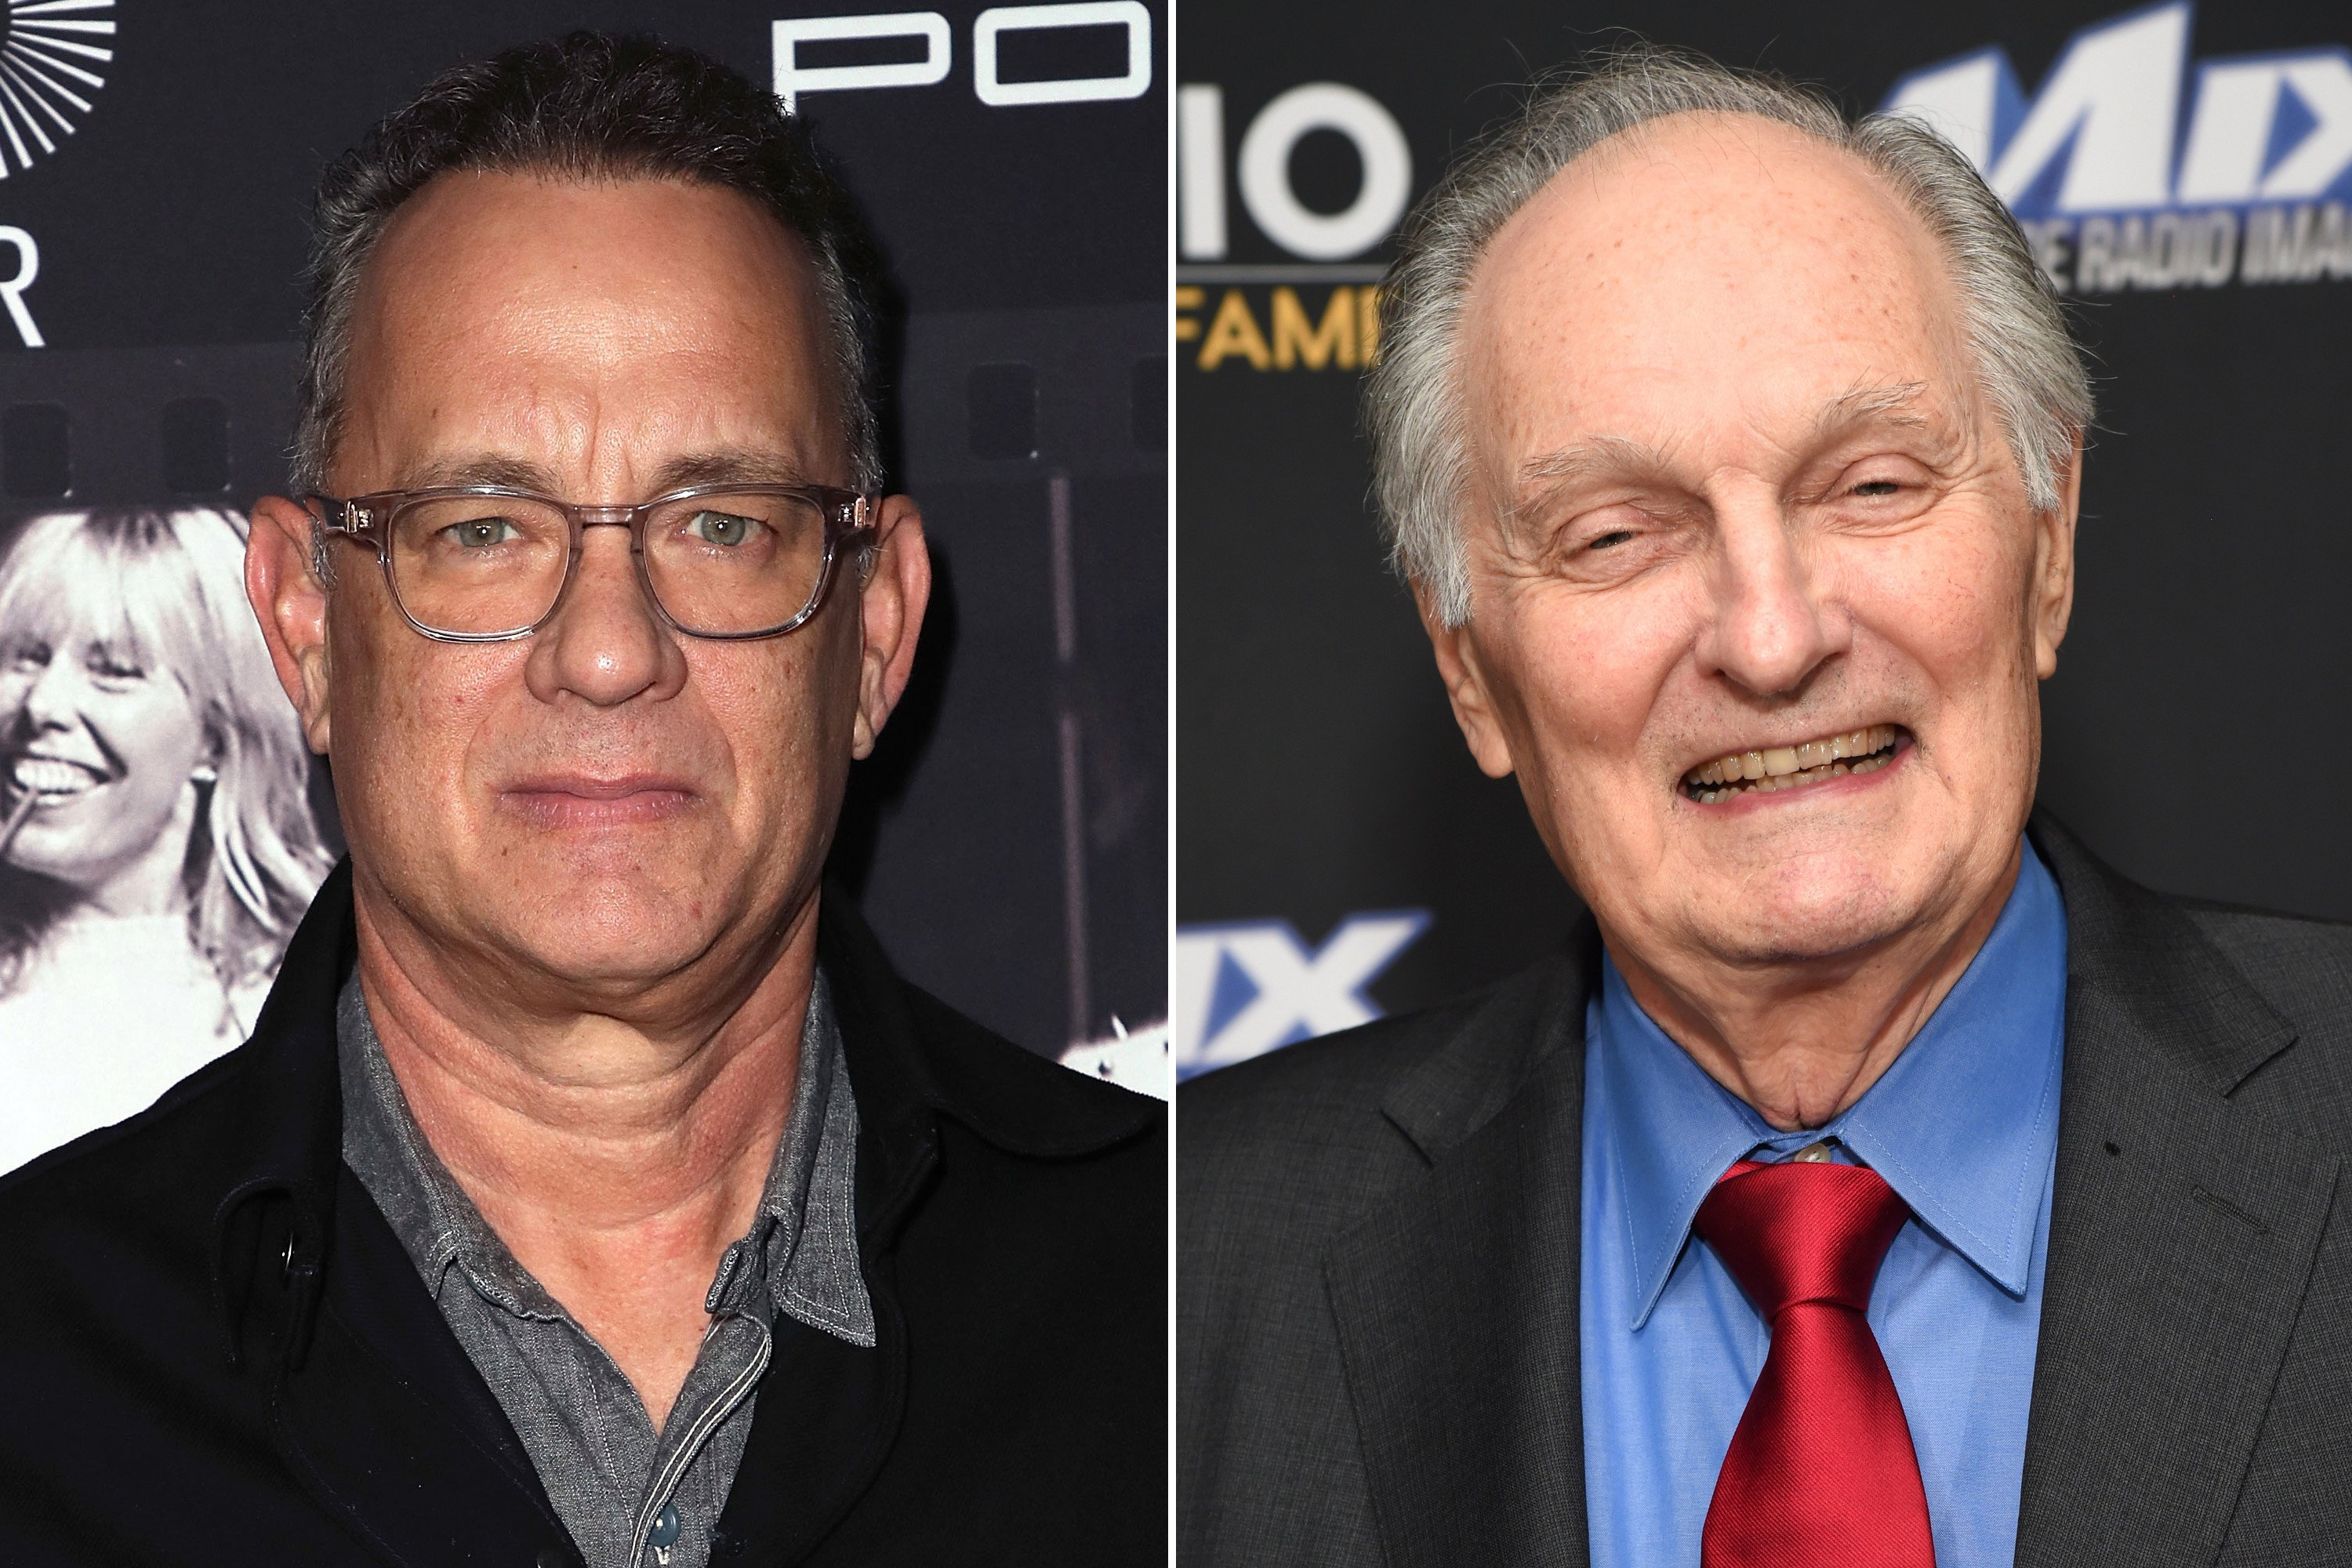 Tom Hanks to present Alan Alda with SAG life achievement award